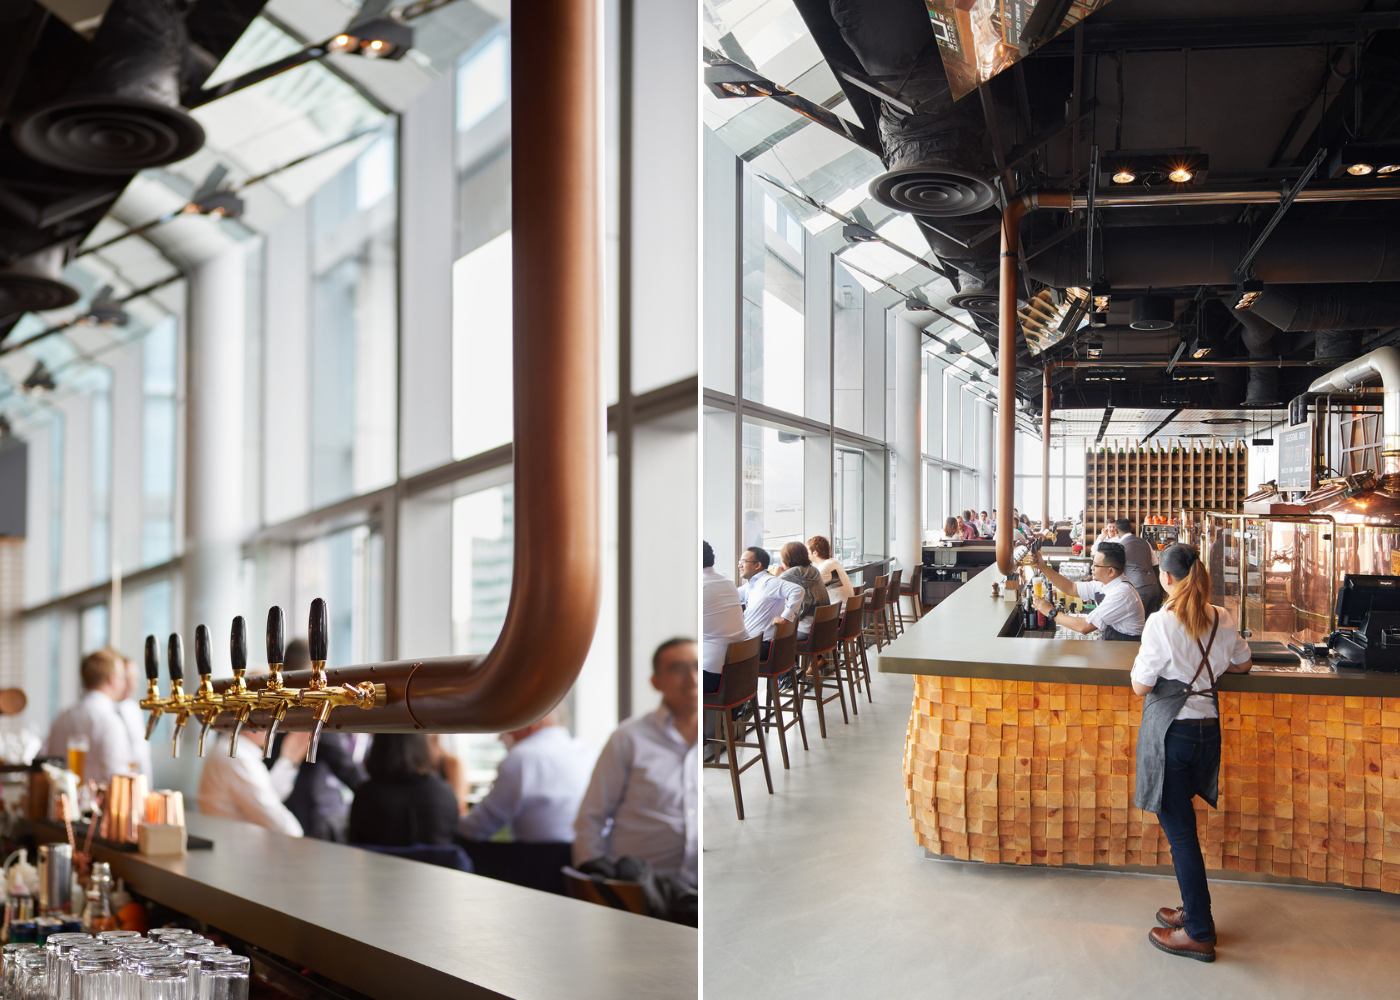 Check out the cool floating beer taps at Level33's revamped new space